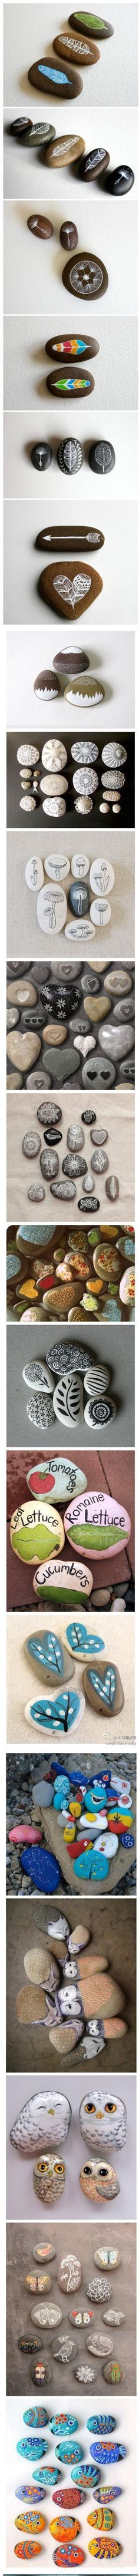 Instructions for painting river rocks on this blog.